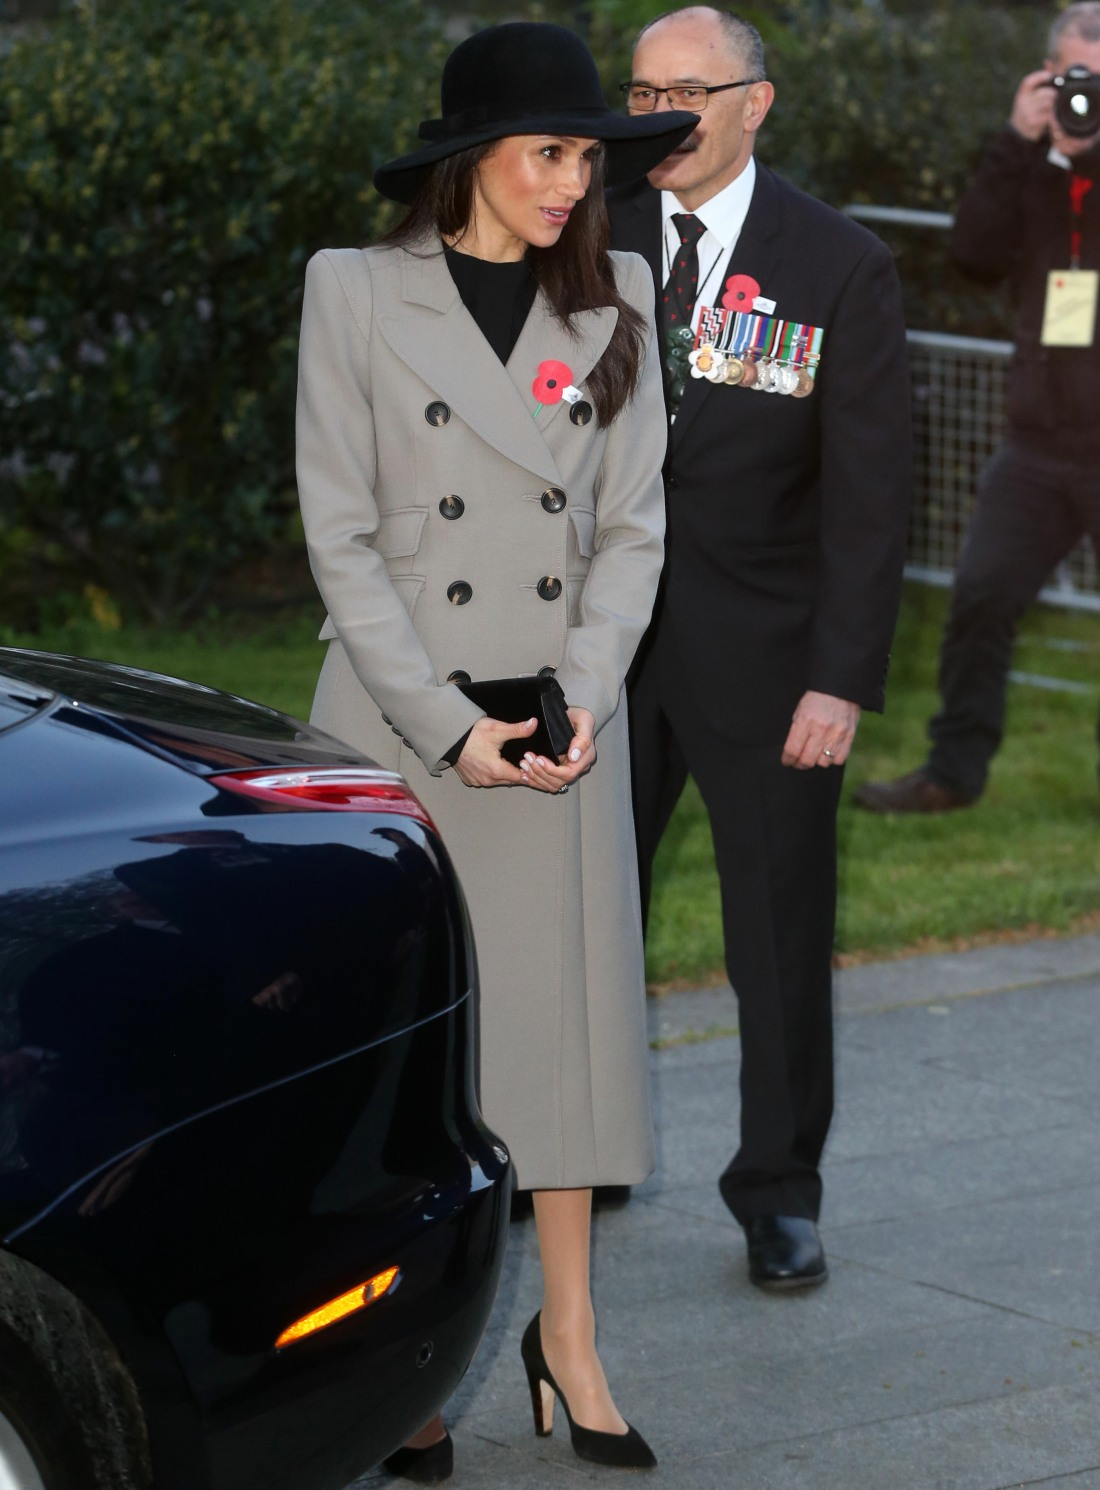 Prince Harry and Meghan Markle attend the Anzac Day official remembrance service